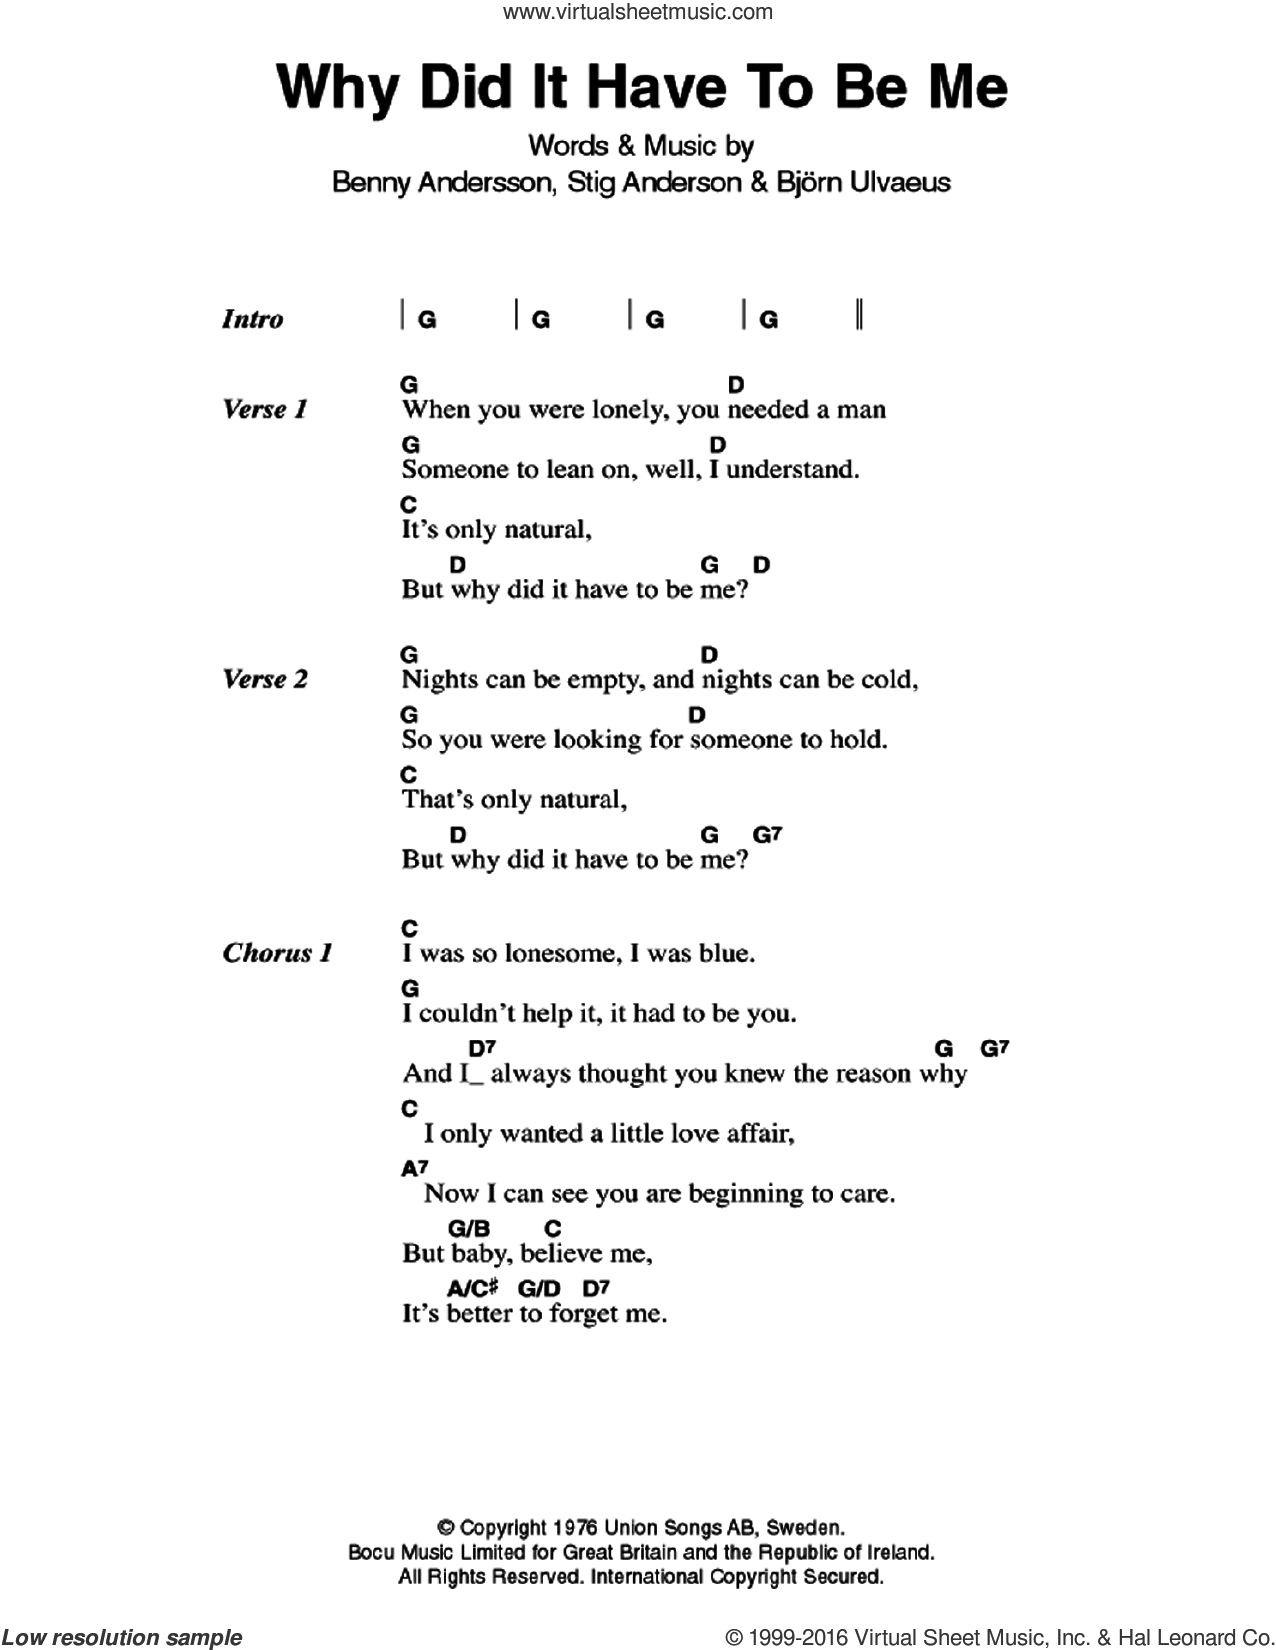 Why Did It Have To Be Me sheet music for guitar (chords) by ABBA, Benny Andersson, Bjorn Ulvaeus and Stig Anderson, intermediate skill level